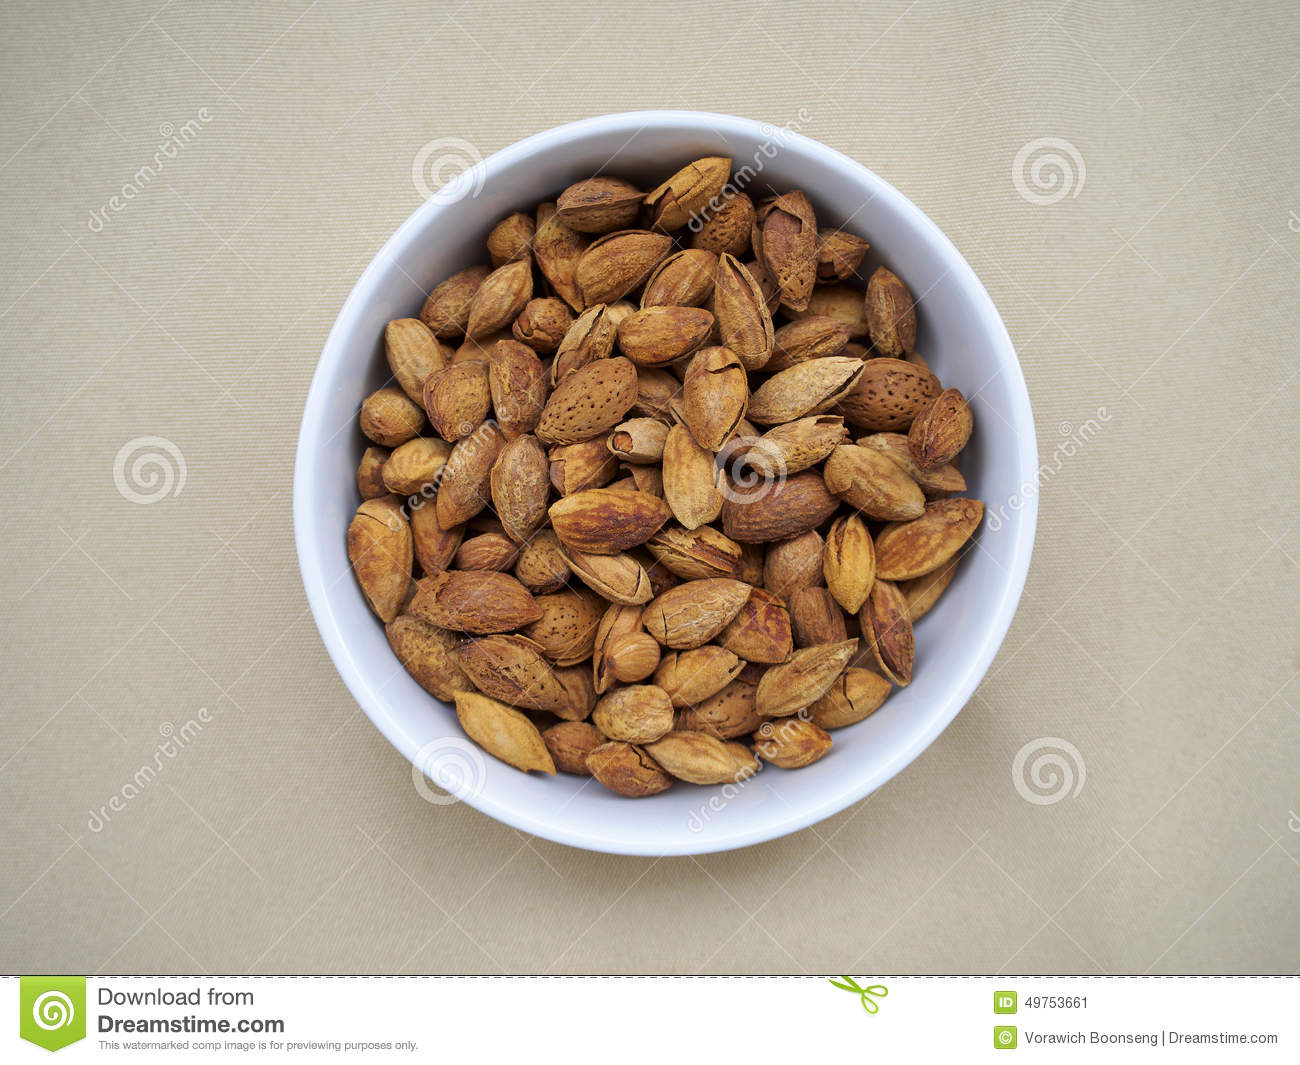 Bowl of almonds on canvas stock image. Image of bowl ...